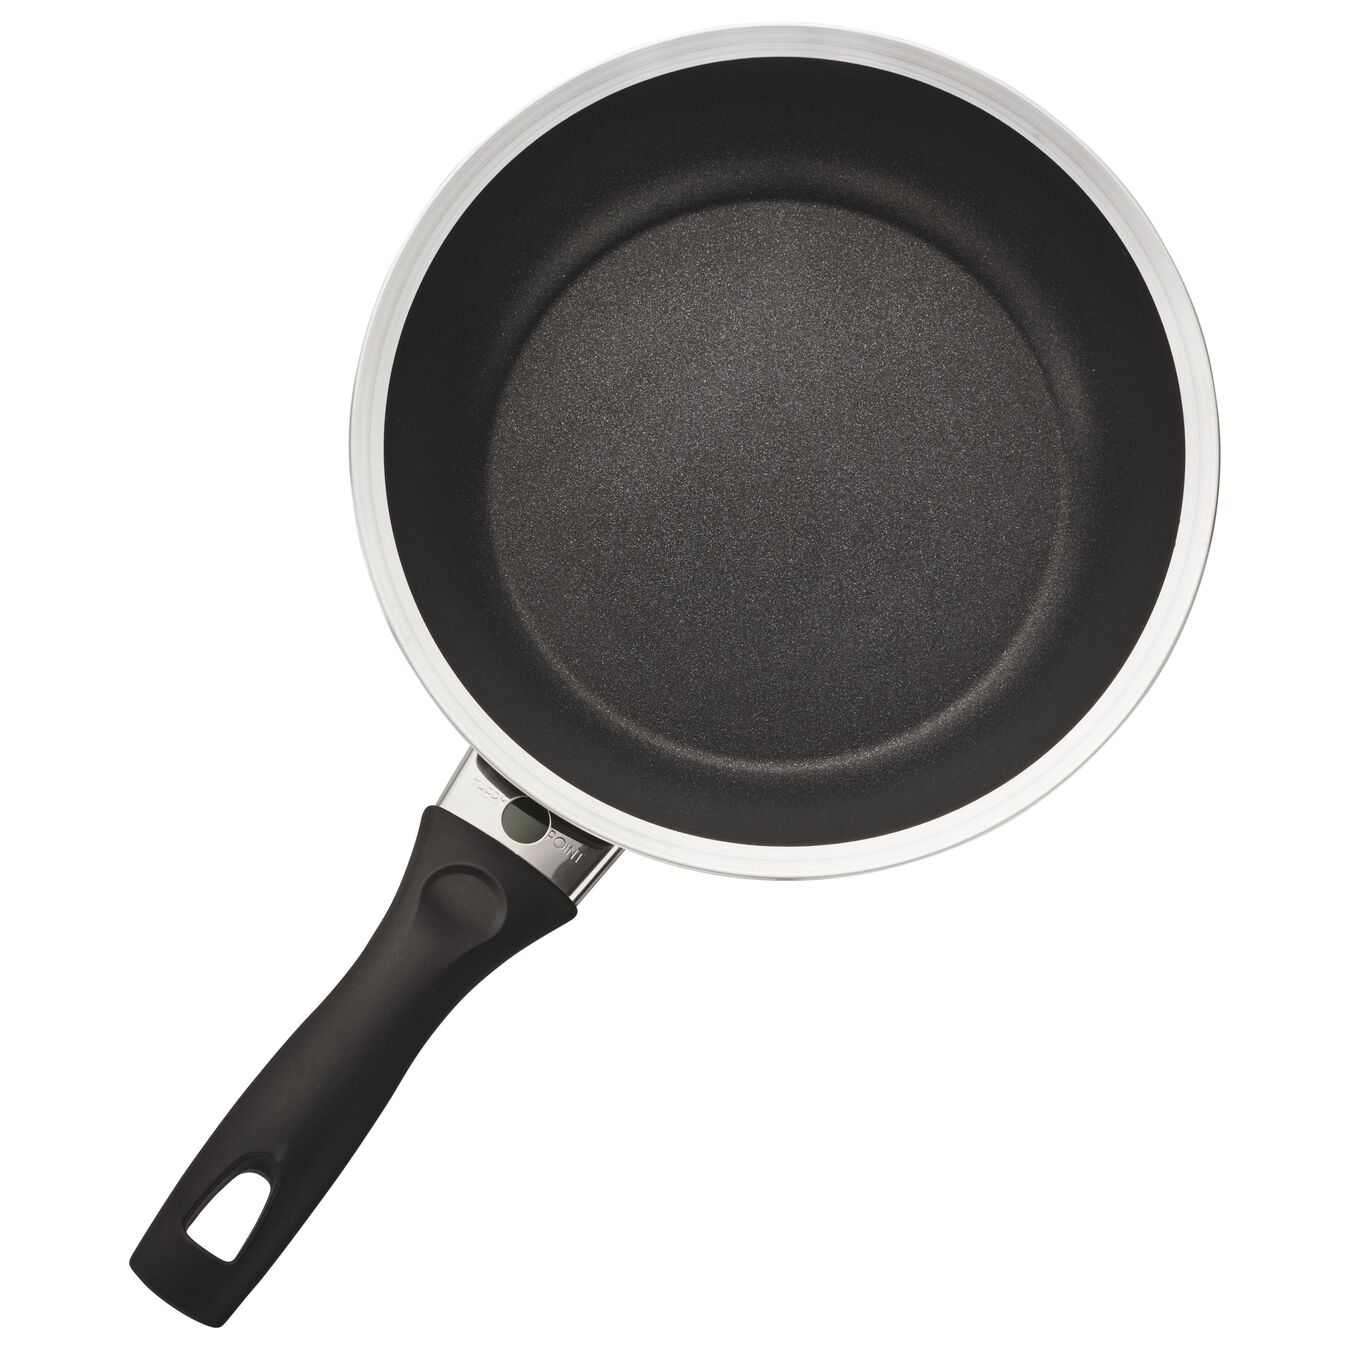 8-inch Nonstick Fry Pan,,large 1